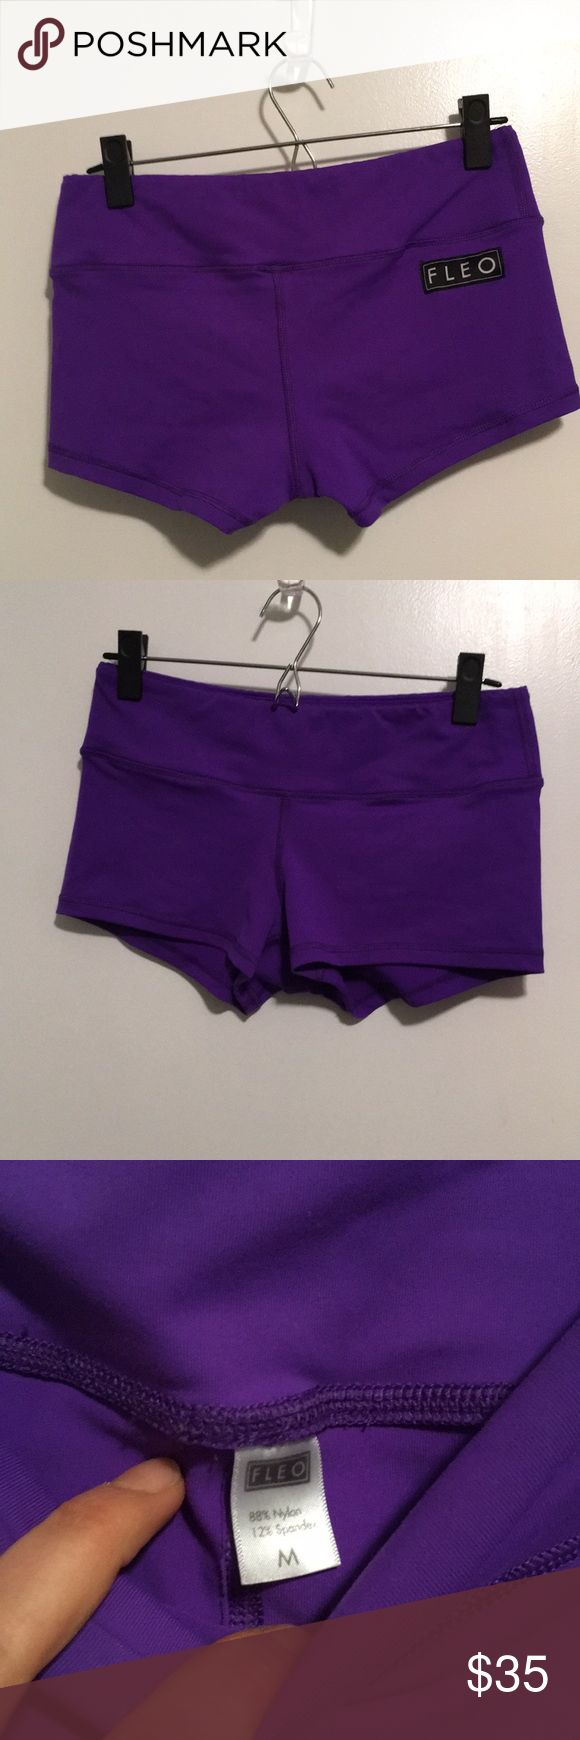 Fleo Shorts purple haze medium Worn one time. Mint condition. Currently online at full price.   Final sale. NO REFUNDS. Please ask all questions prior to purchase.  Items are sold exactly as is. Fleo Shorts